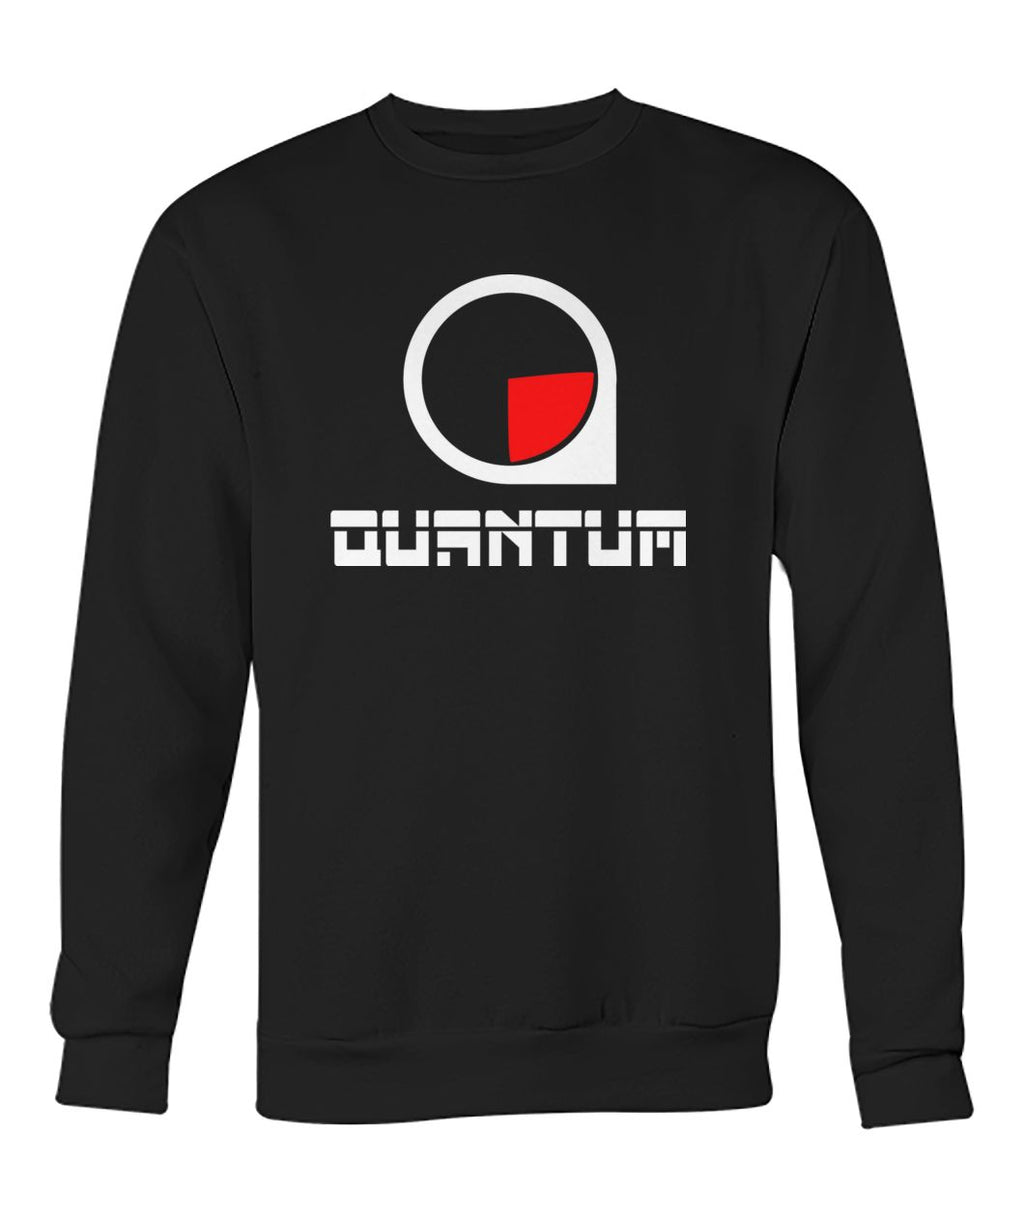 Quantum Crew Neck Sweater